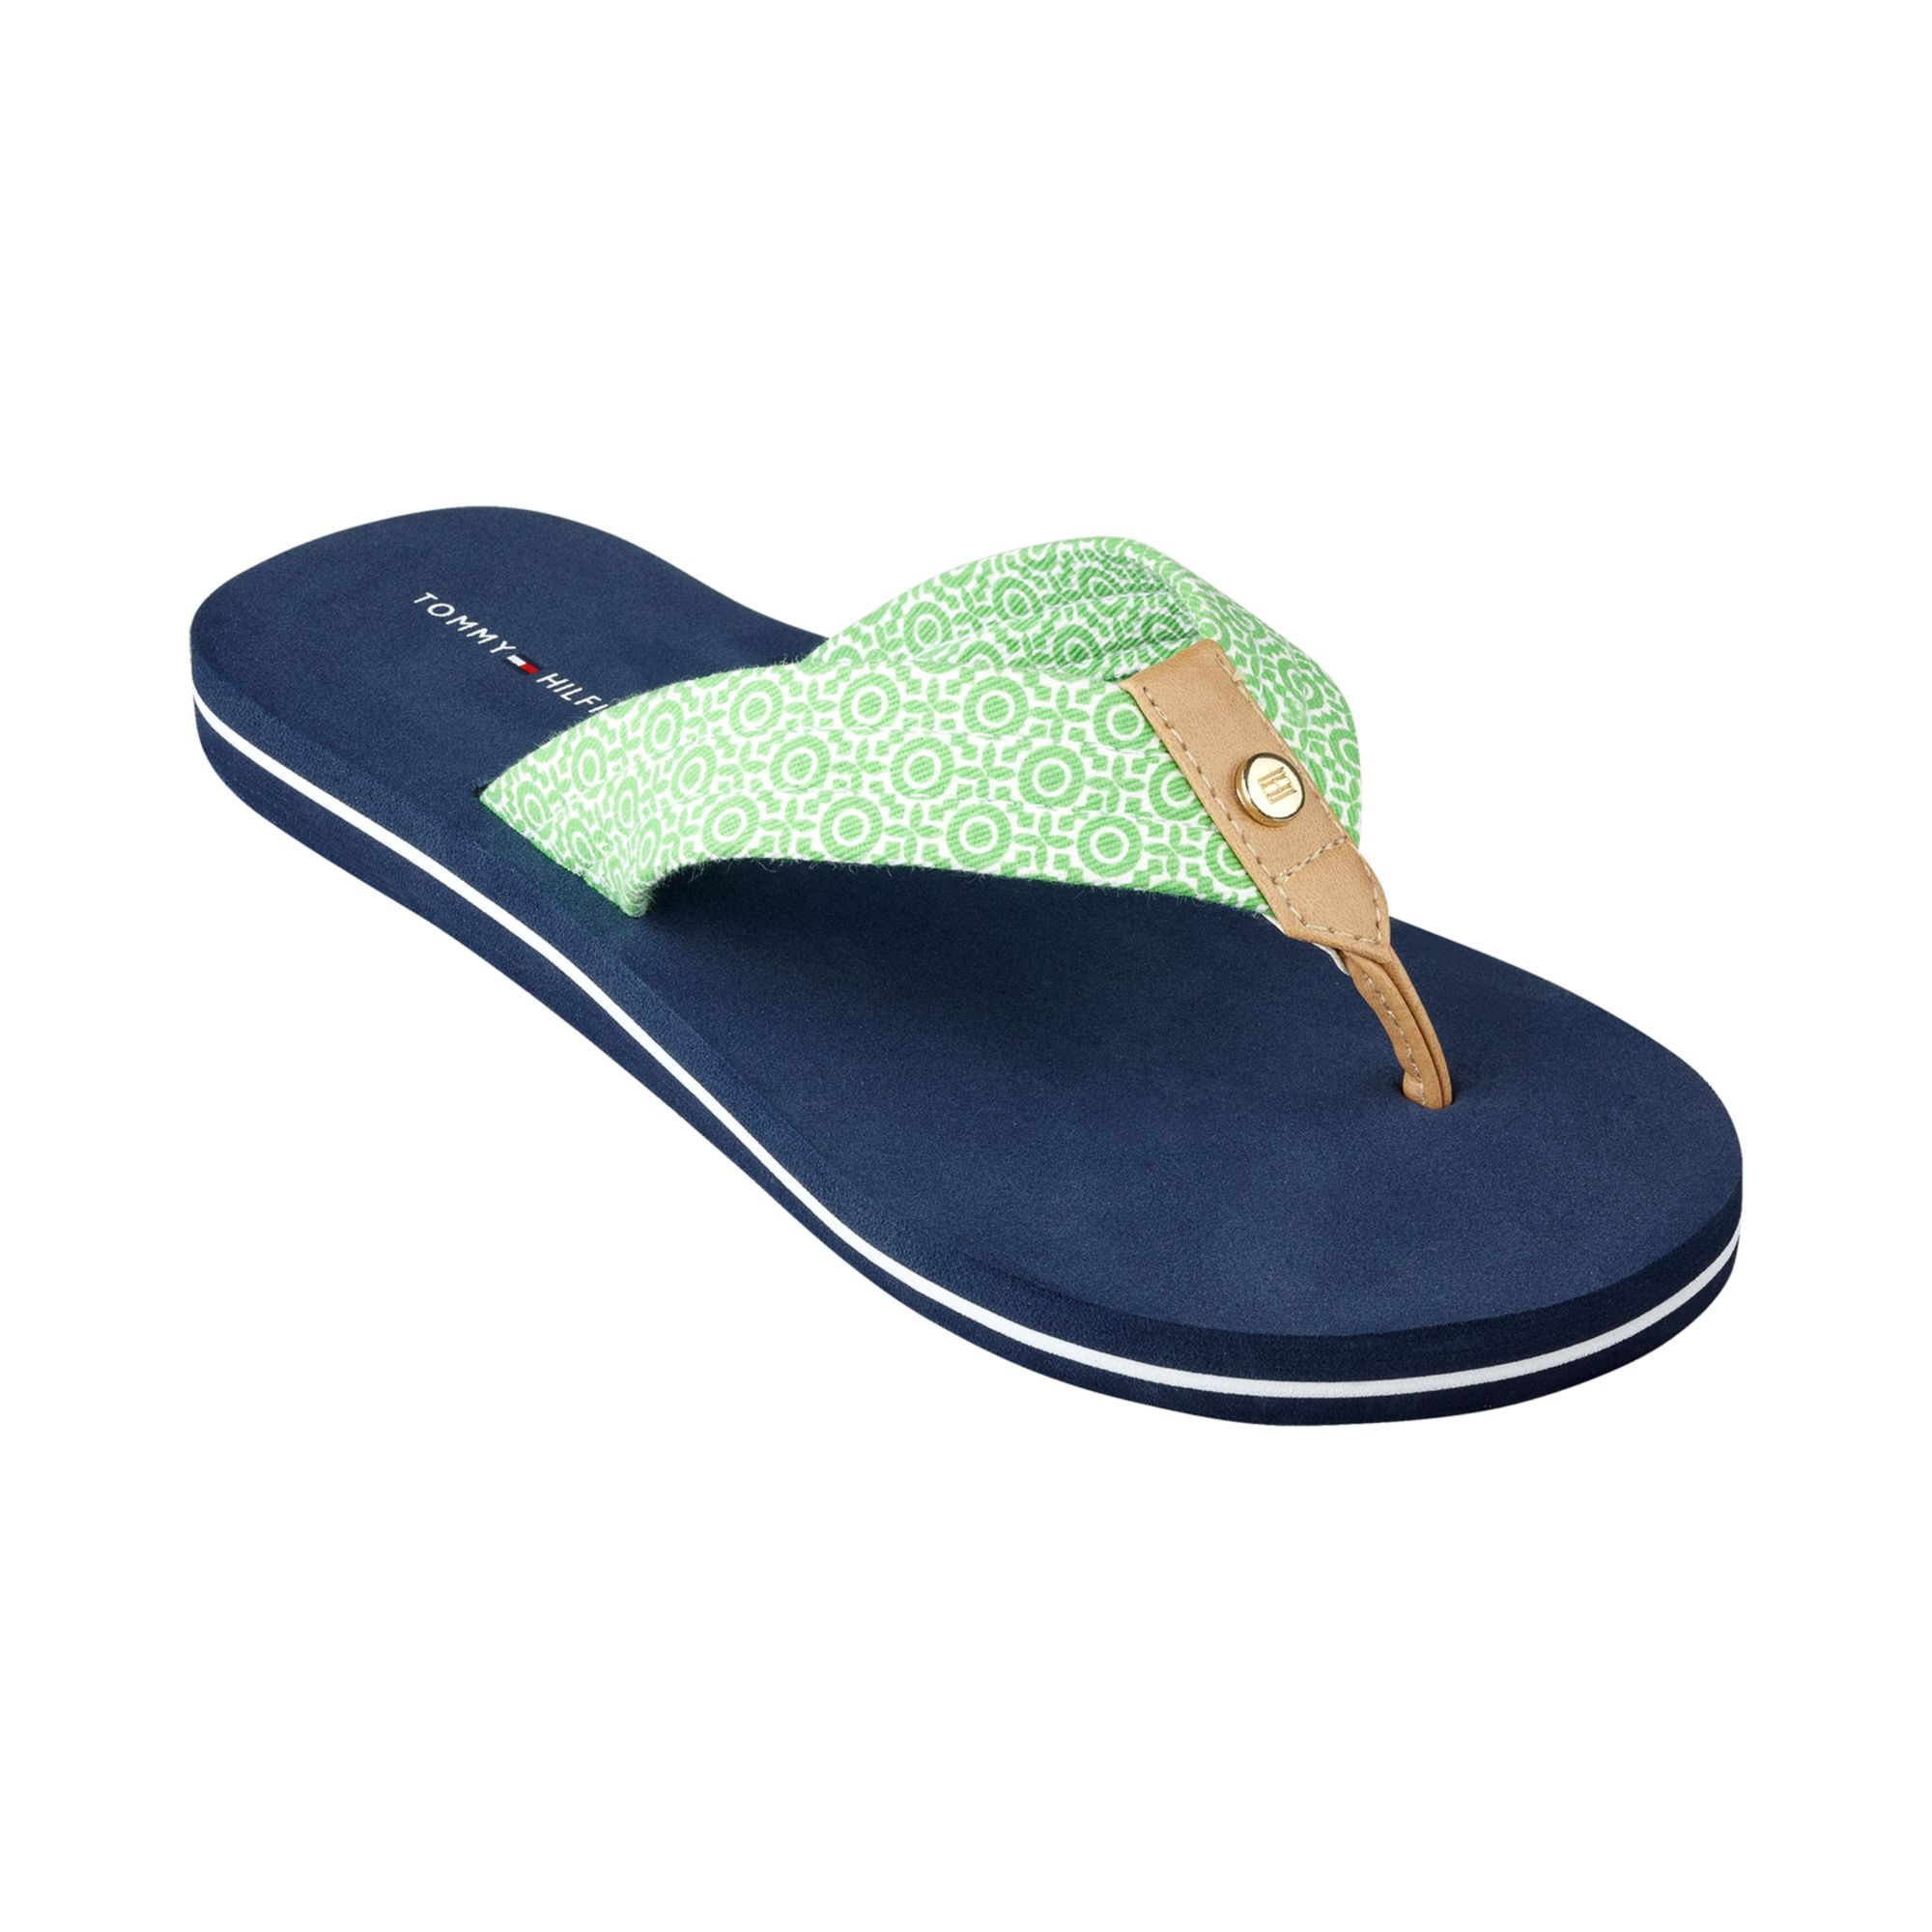 tommy hilfiger womens corrale flip flops in green green print lyst. Black Bedroom Furniture Sets. Home Design Ideas